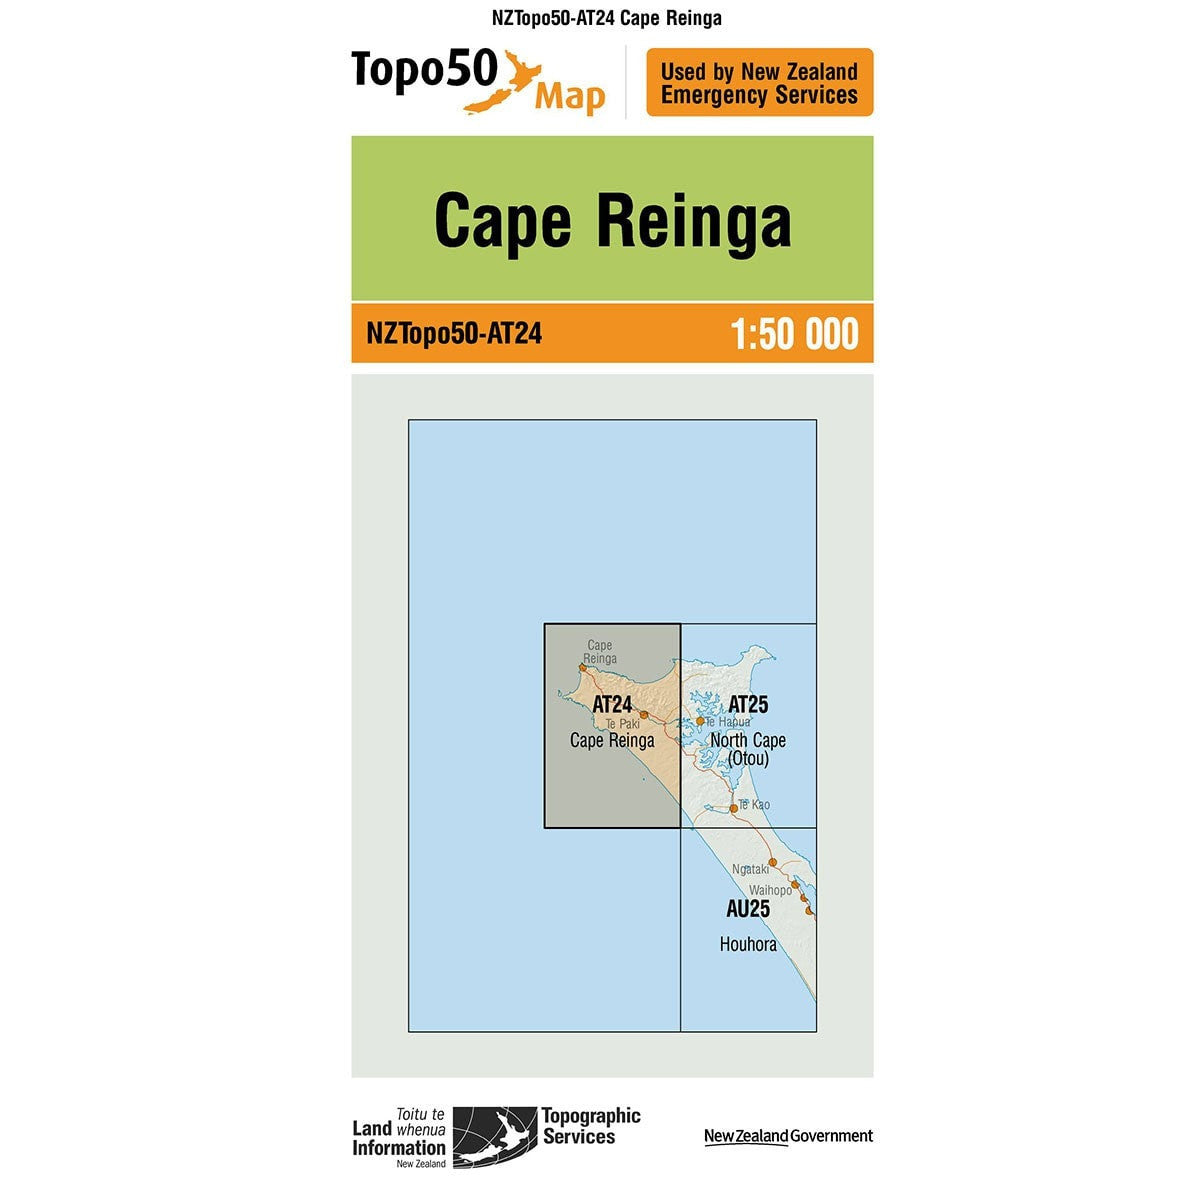 Buy Topo50 AT24 Cape Reinga NZ | NZ's Best Trail Running and Crossfit | Highbeam.co.nz - Get out there and go for a run!